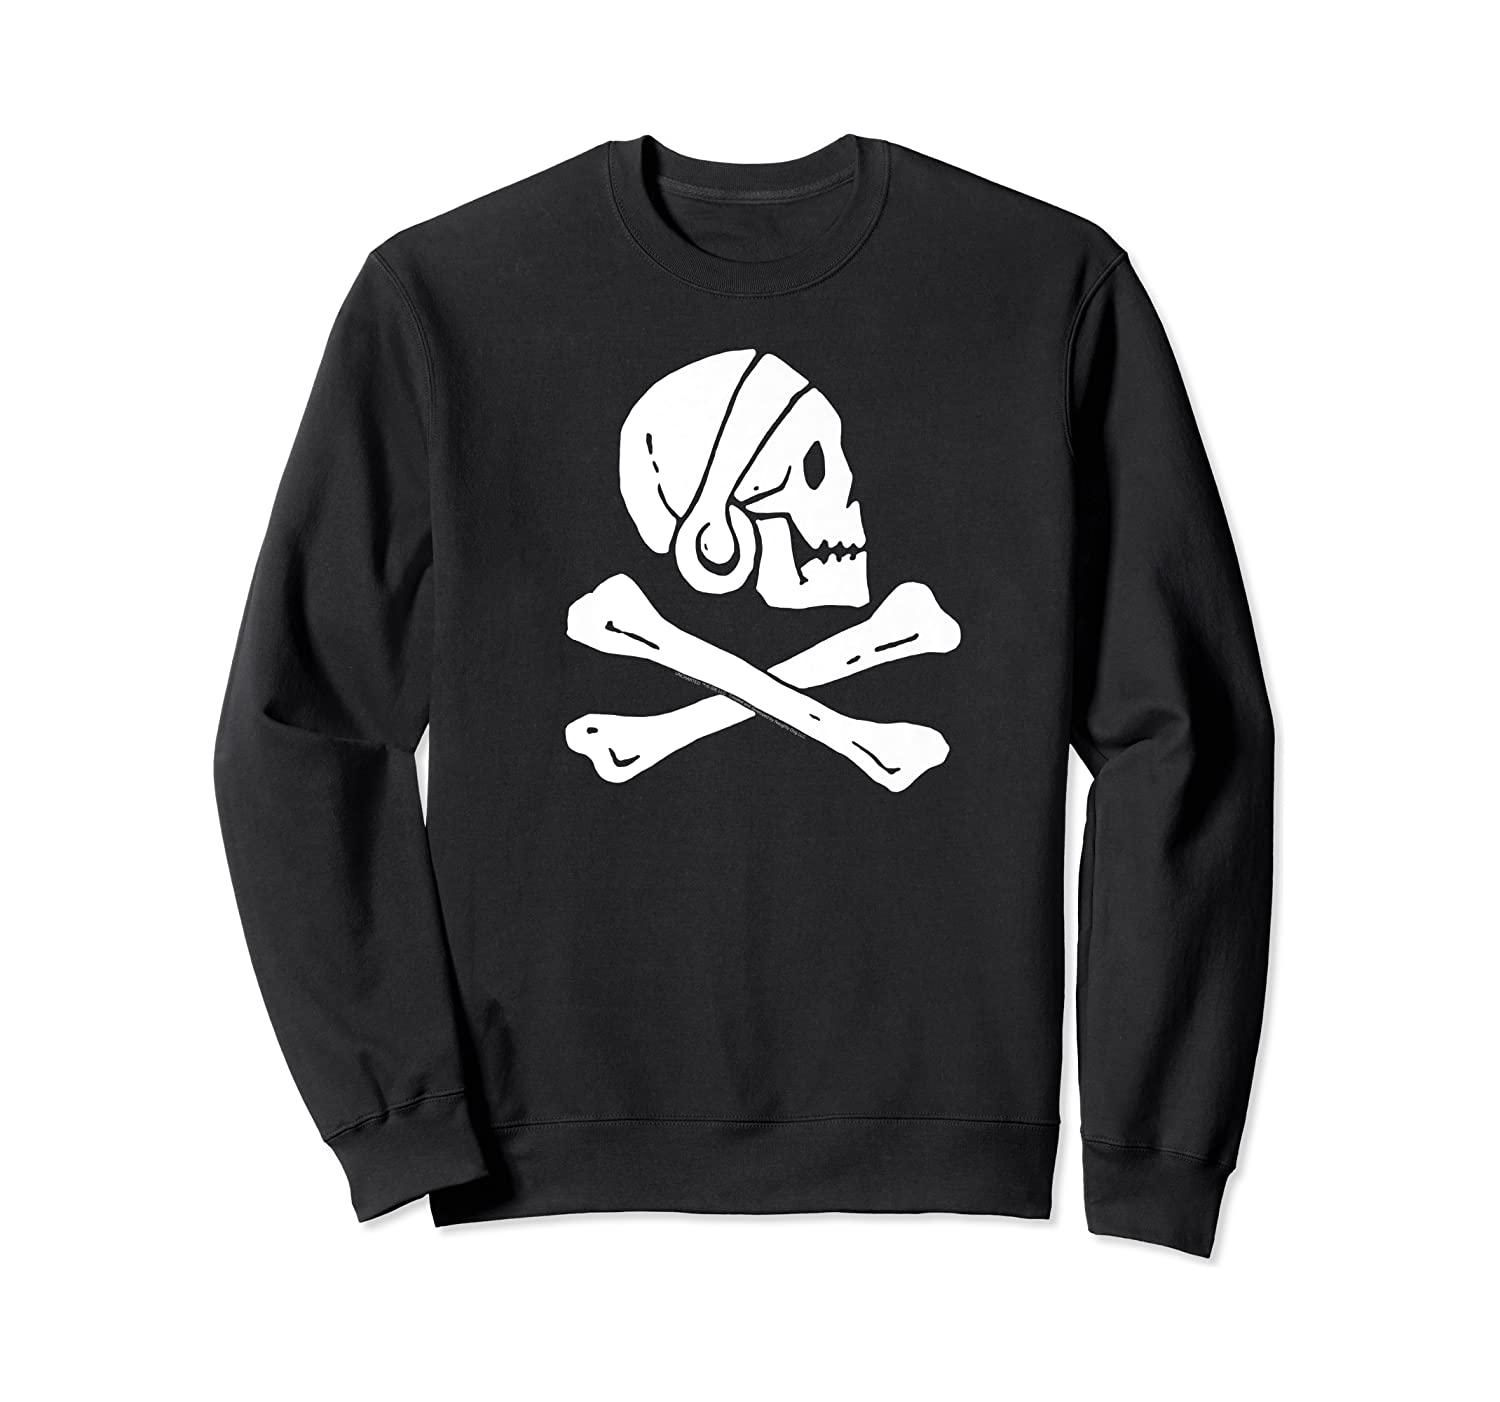 Uncharted Henry Avery Pirate Flag Shirt Crewneck Sweater